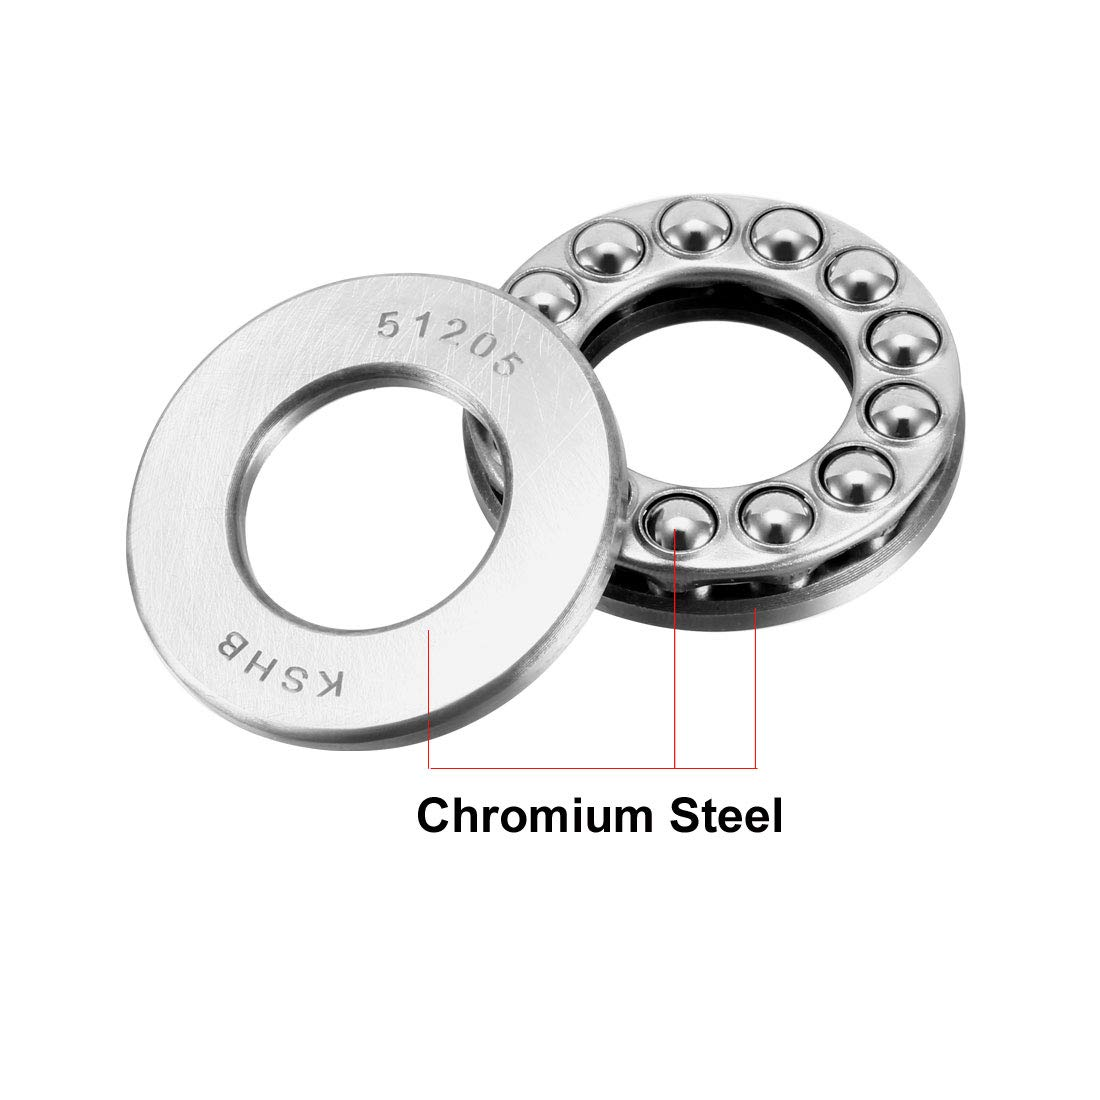 uxcell 51205 Single Direction Thrust Ball Bearings 25mm x 47mm x 15mm Chrome Steel Pack of 2